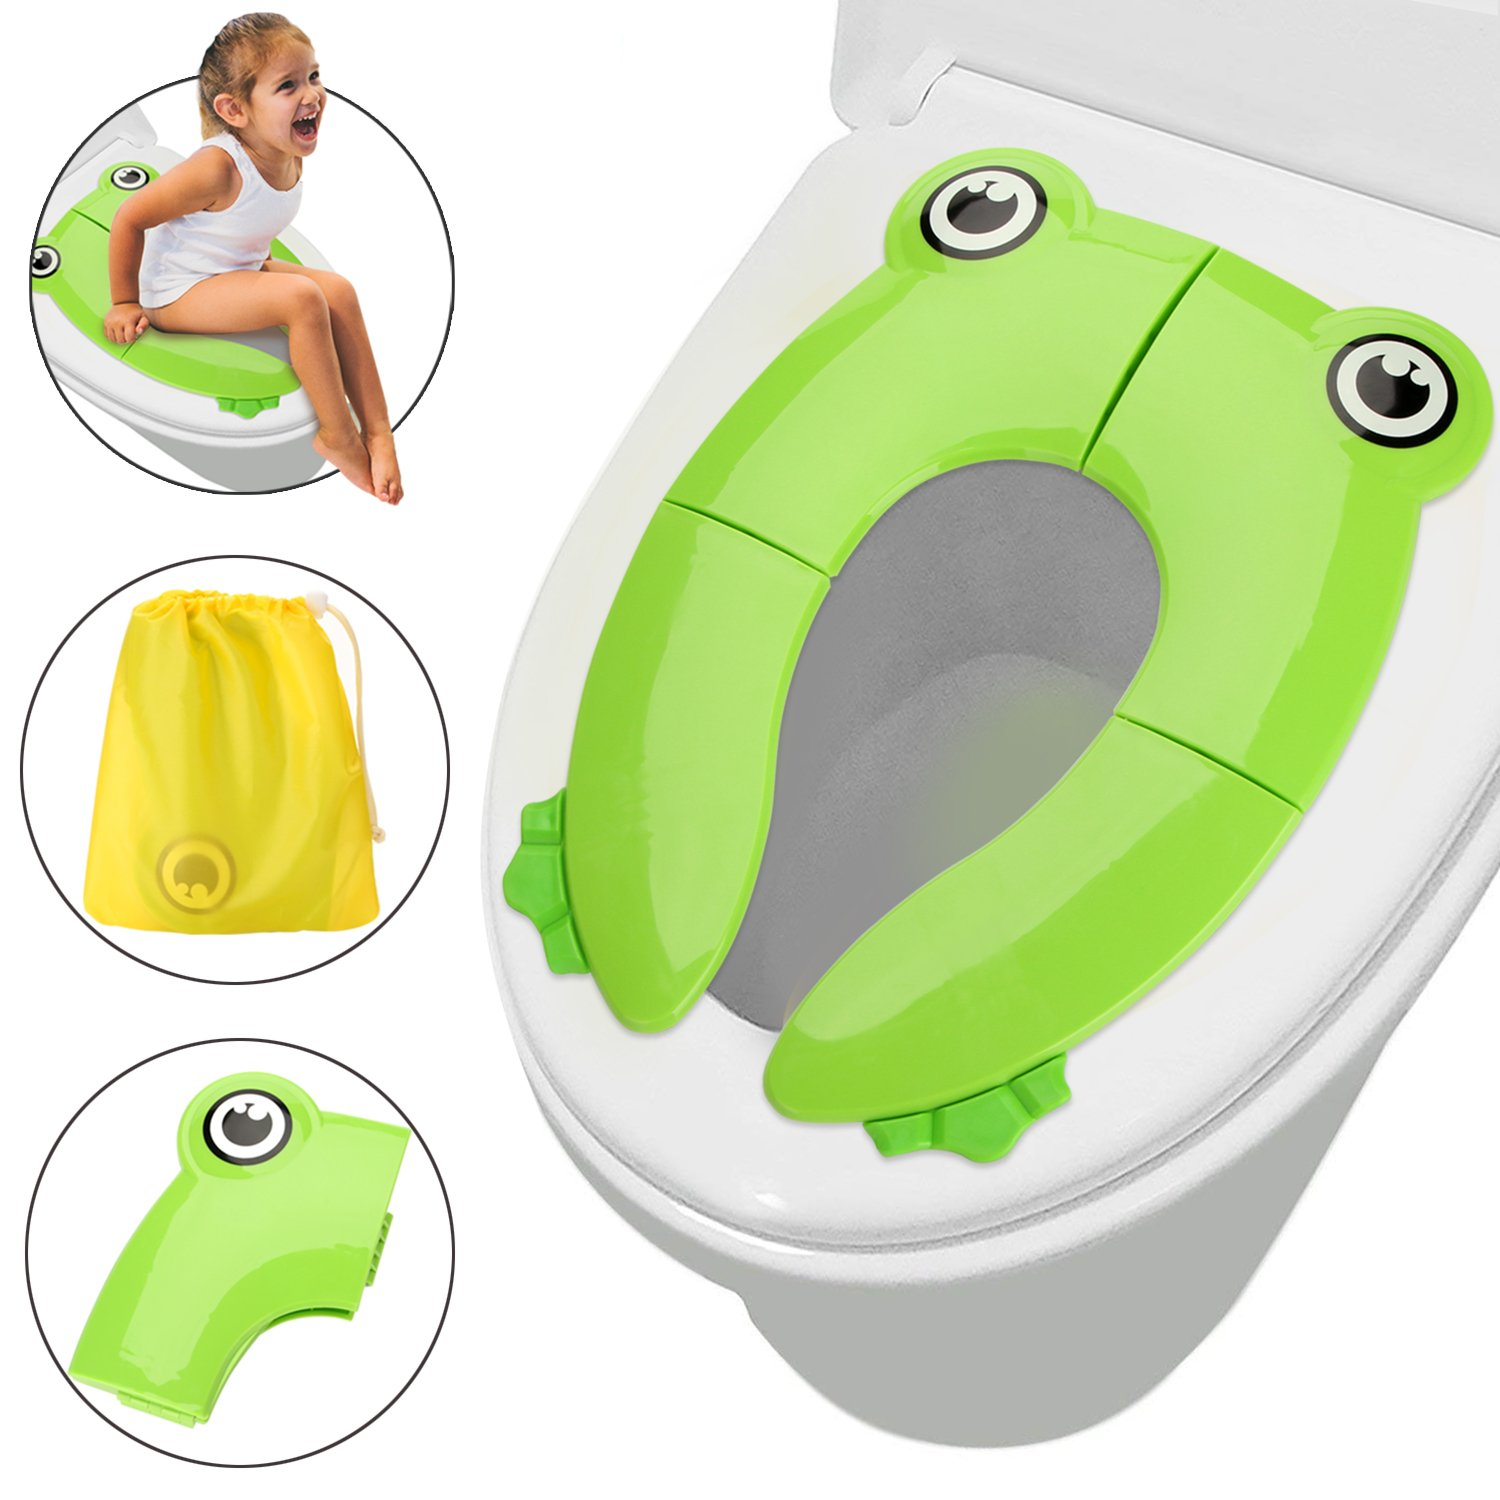 Potty Training Seat, FITNATE Fits Round Potty Training Seat U&Oval Toilets with Cushion Handle & Anti-Slip Backrest, Bath Toy Organizer,Toilet Brush for Boys, Girls, Babies & Toddlers (Green)